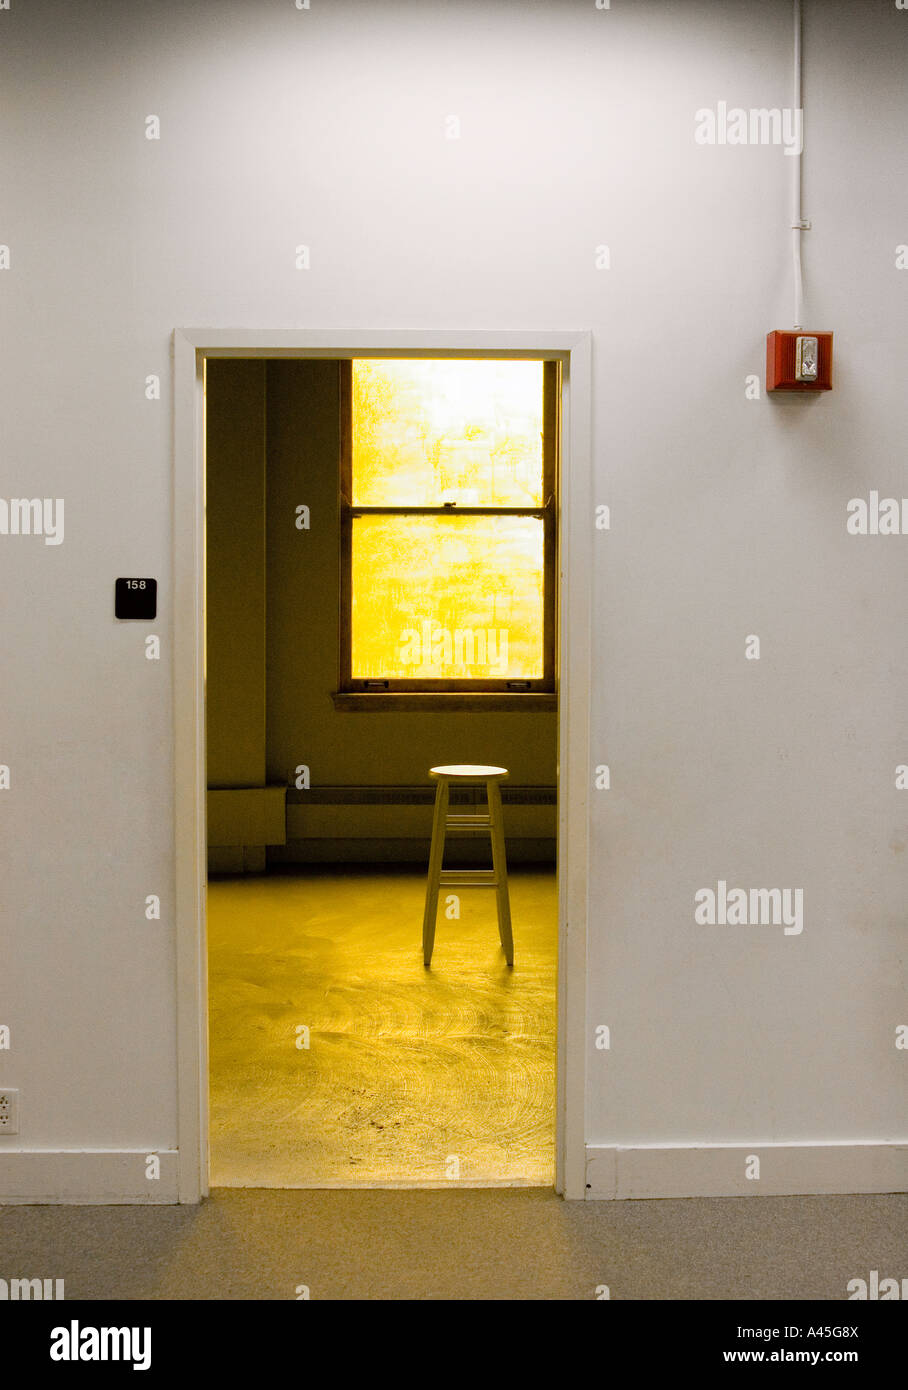 Small room with wooden stool set in warm yellow light Stock Photo